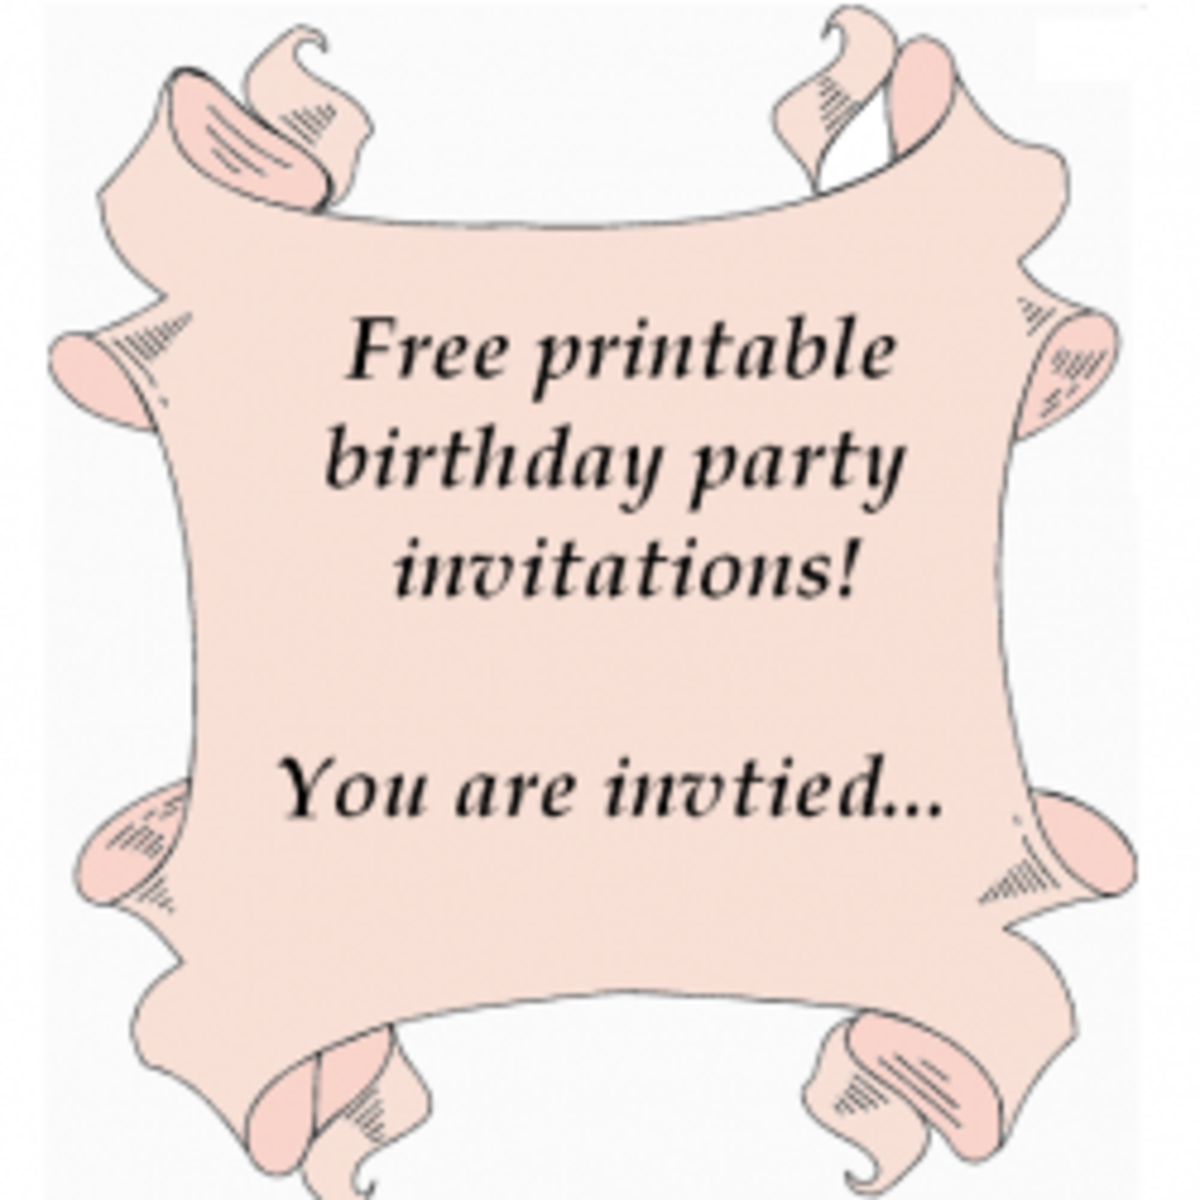 Free printable birthday party invitations templates hubpages free printable birthday party invitations templates filmwisefo